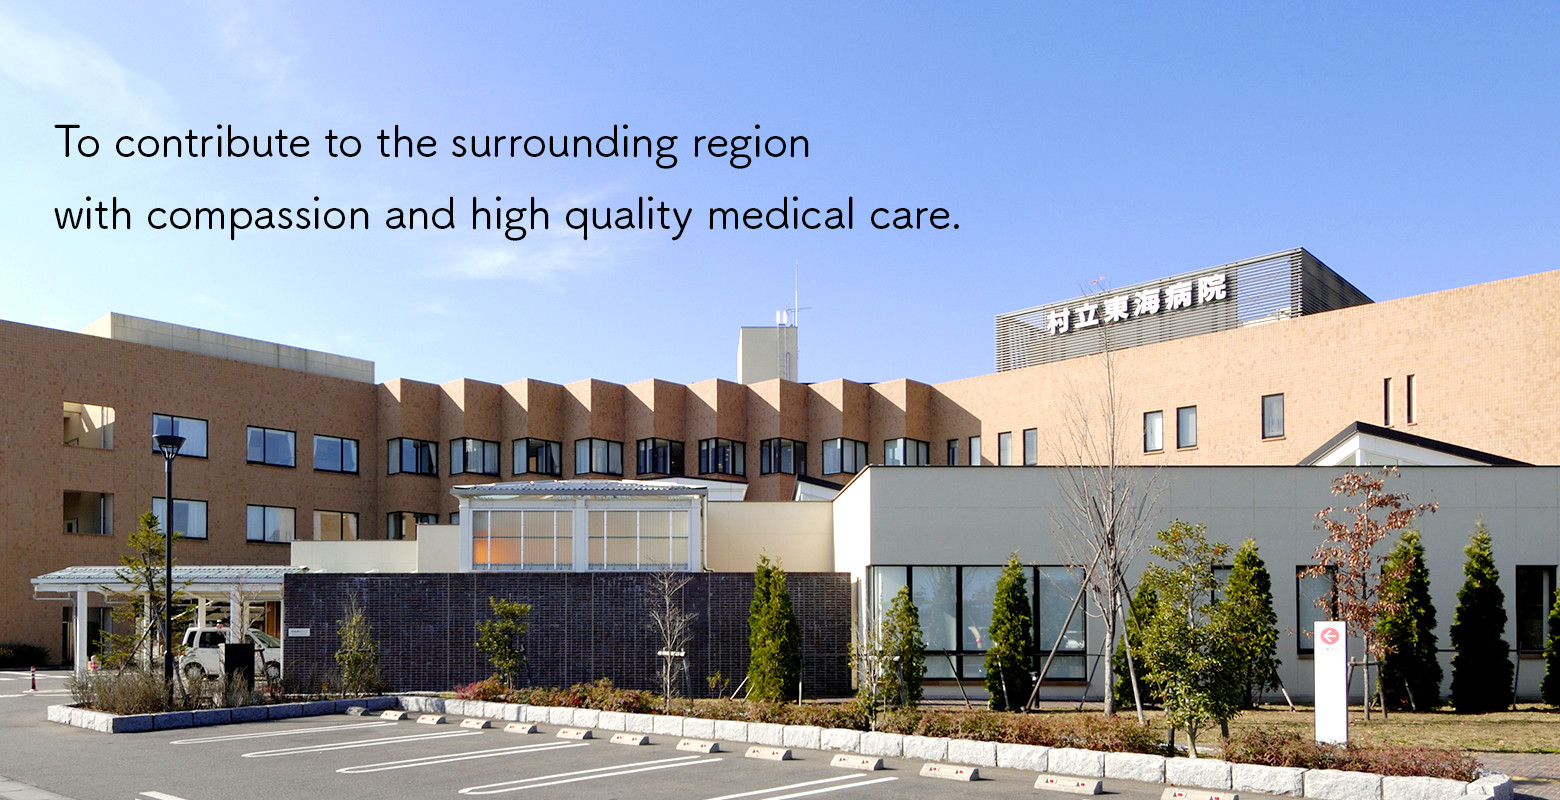 To contribute to the surrounding region with compassion and high quality medical care.